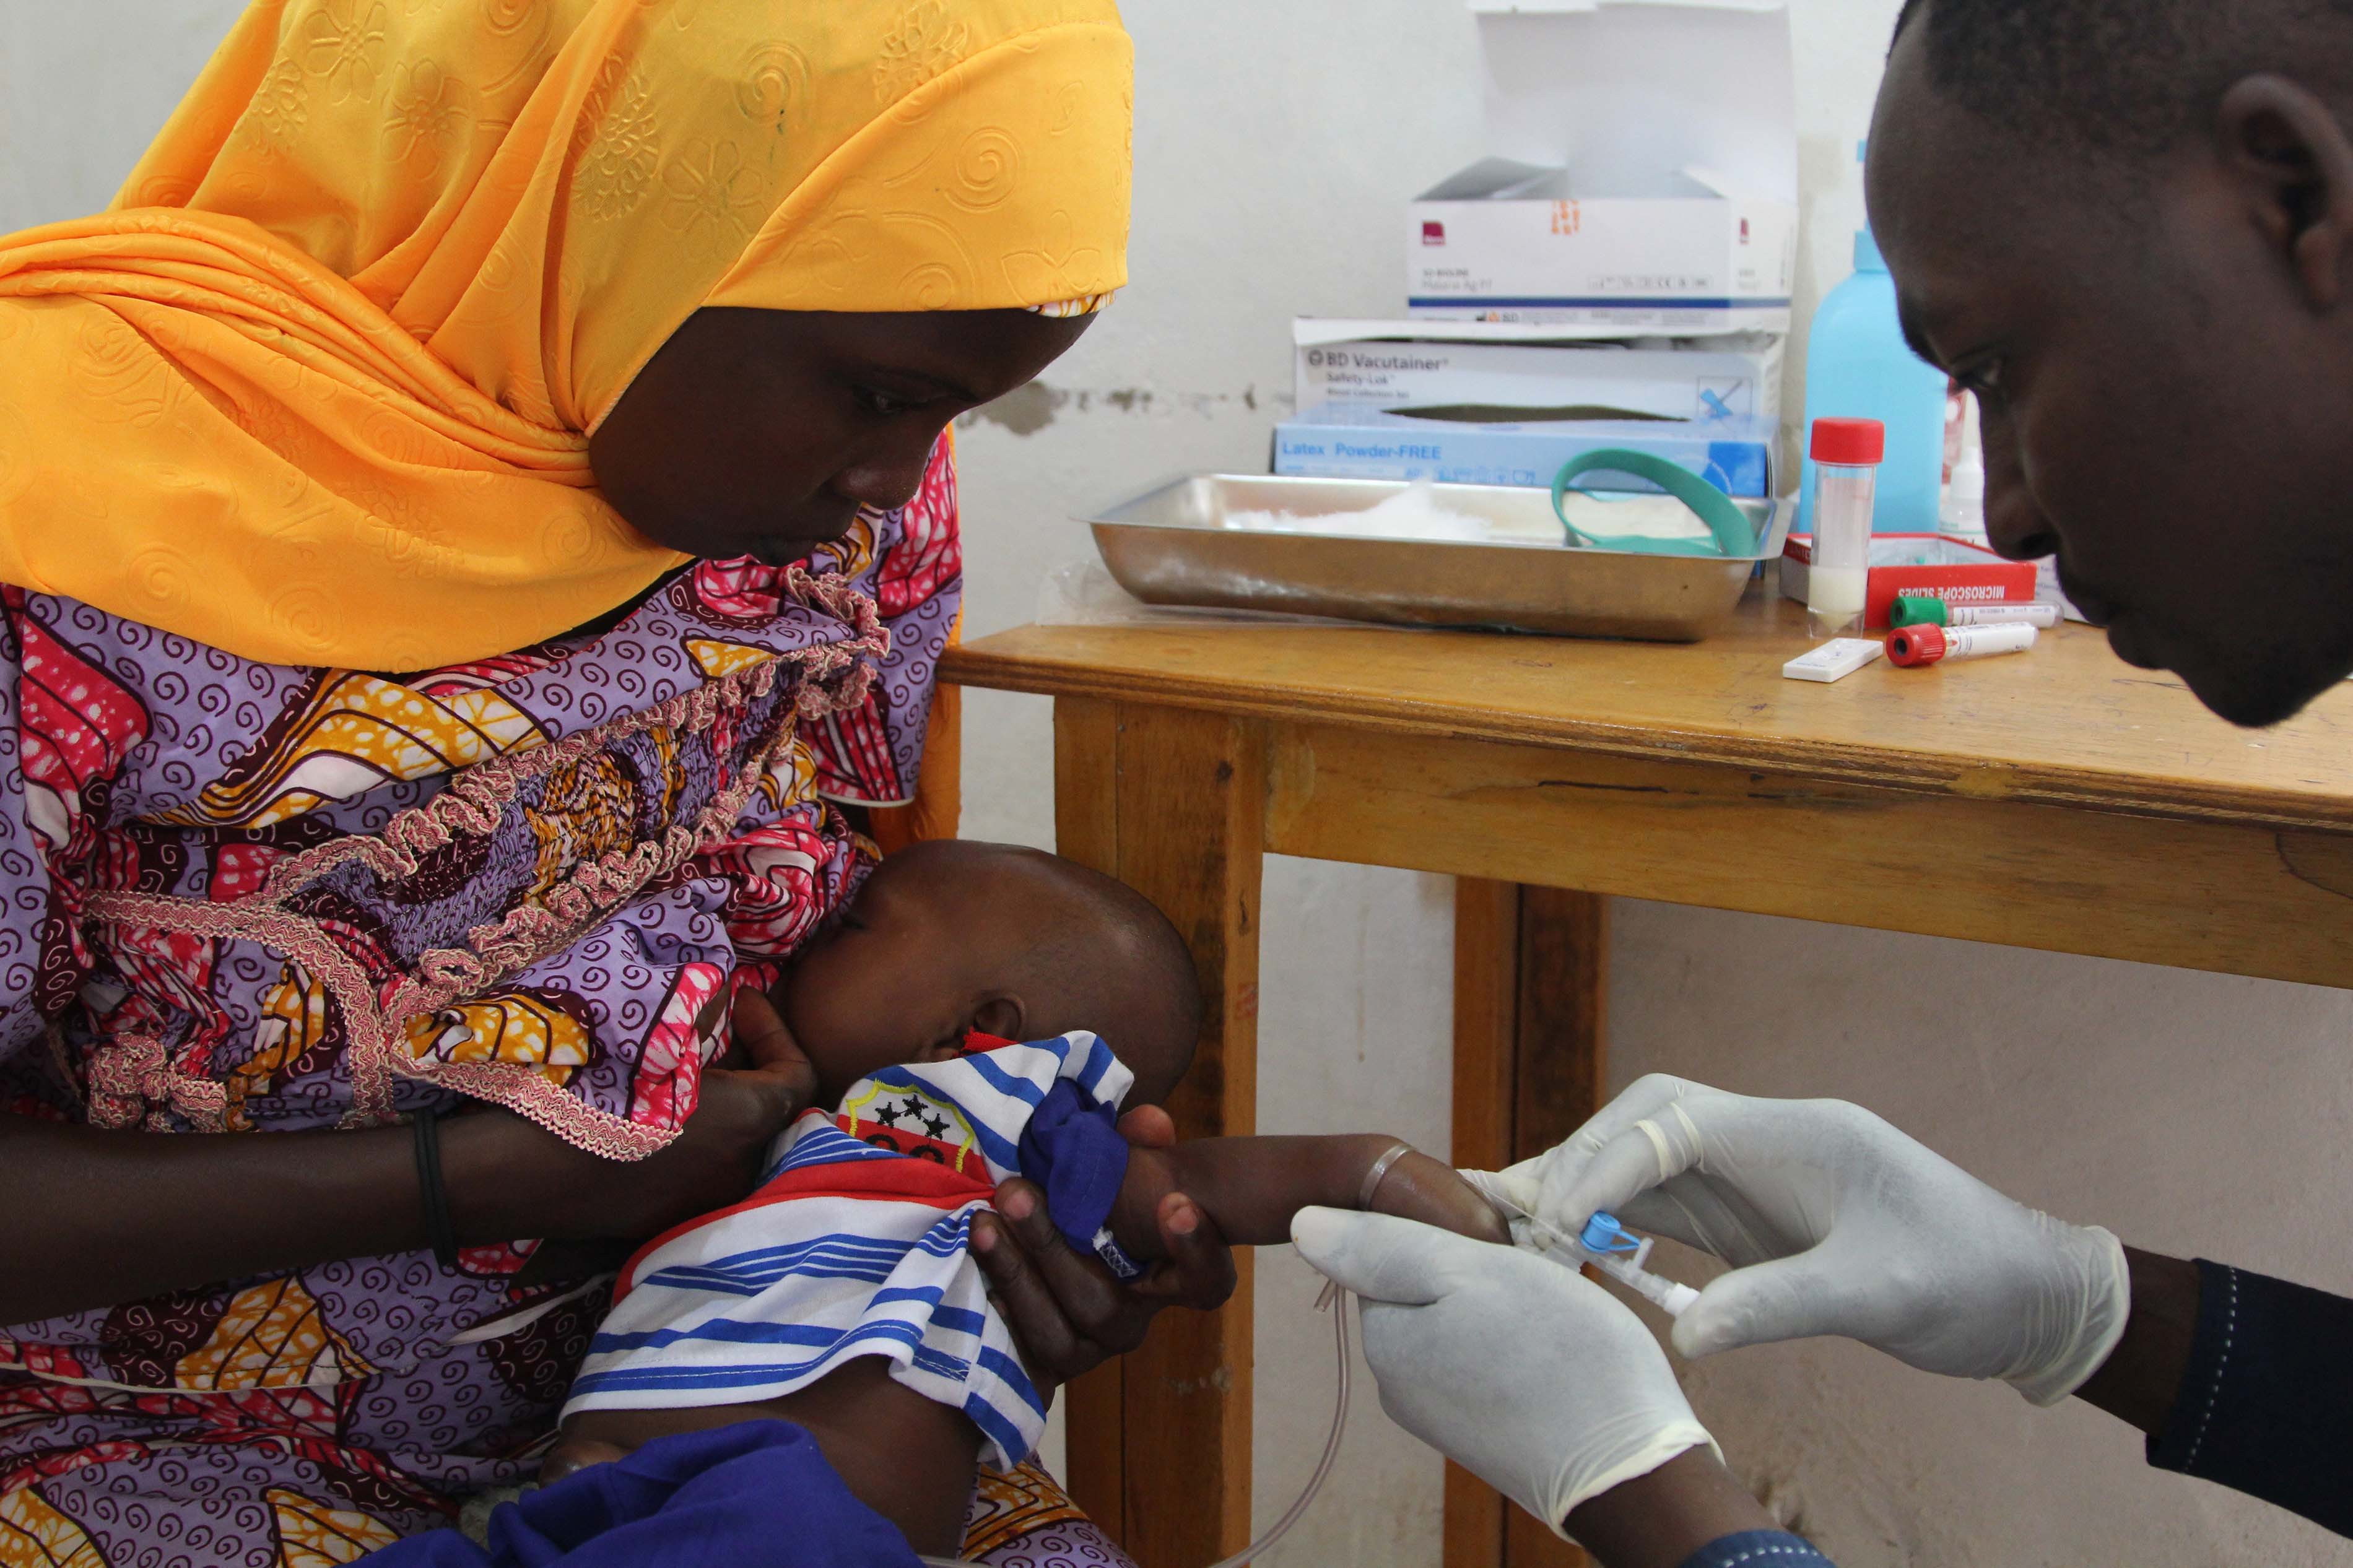 Eight-week-old Mohamed Zakari receives his first dose of the oral rotavirus vaccine (or the placebo). Eight weeks is the cut-off age. If Hadiza had come one day later, they would have had to be excluded from the clinical trial in order to comply with the medical protocol. Mohamed will receive the second and third doses of the vaccine at 10 and 14 weeks, respectively. Photograph by Séverine Bonnet